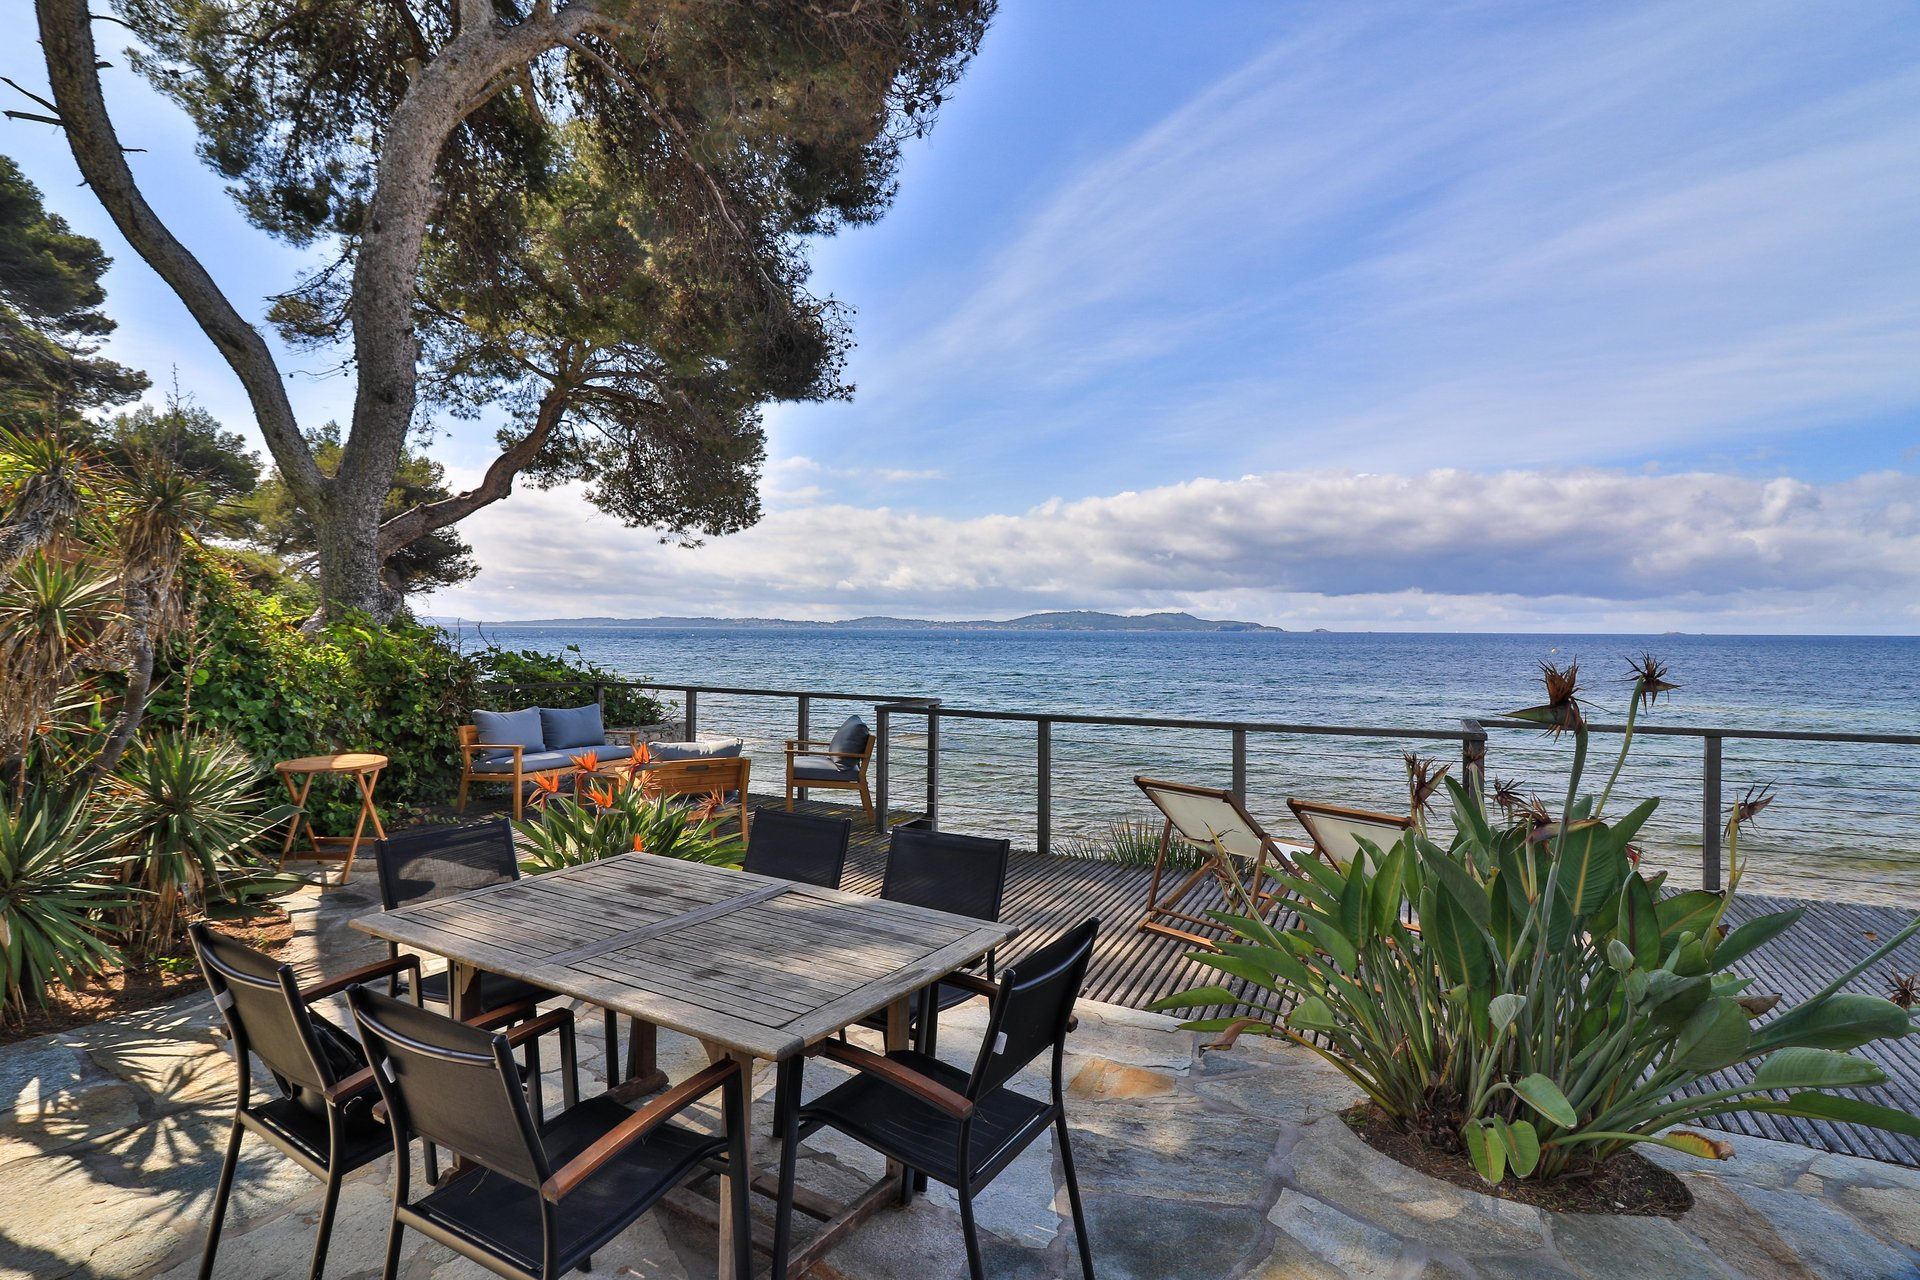 Exceptional waterfront property in Carqueiranne